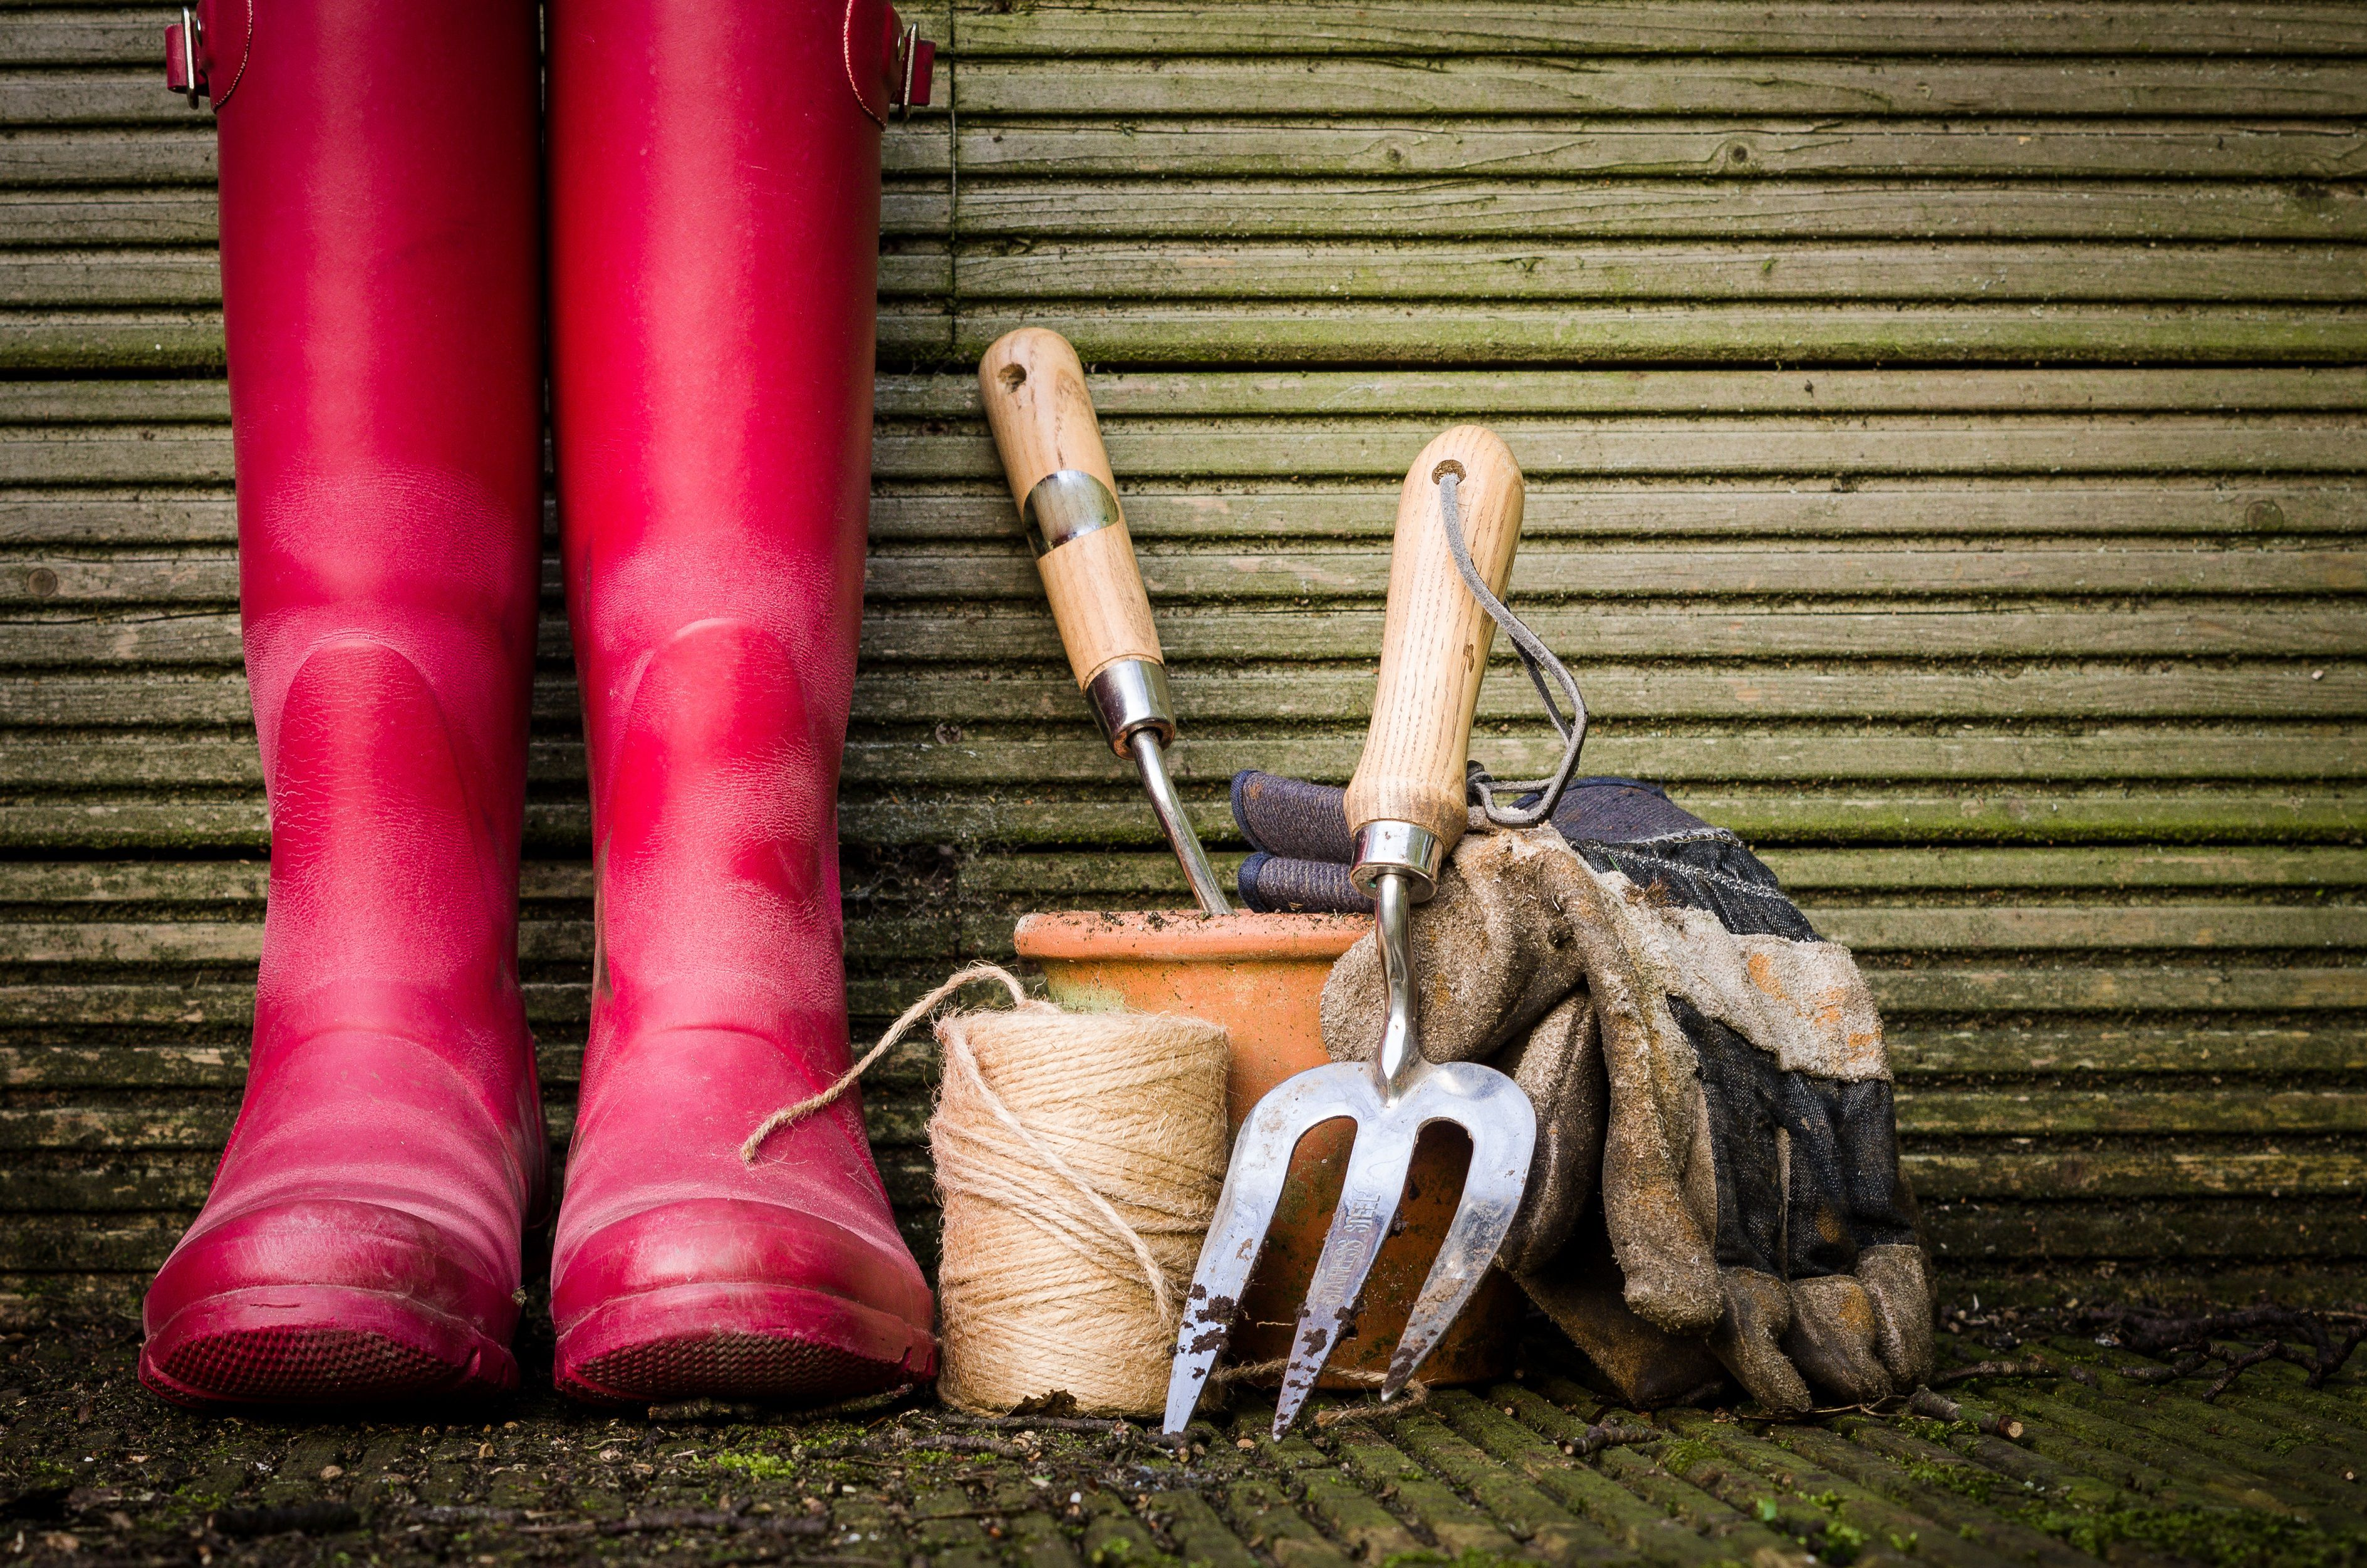 Garden boots and tools